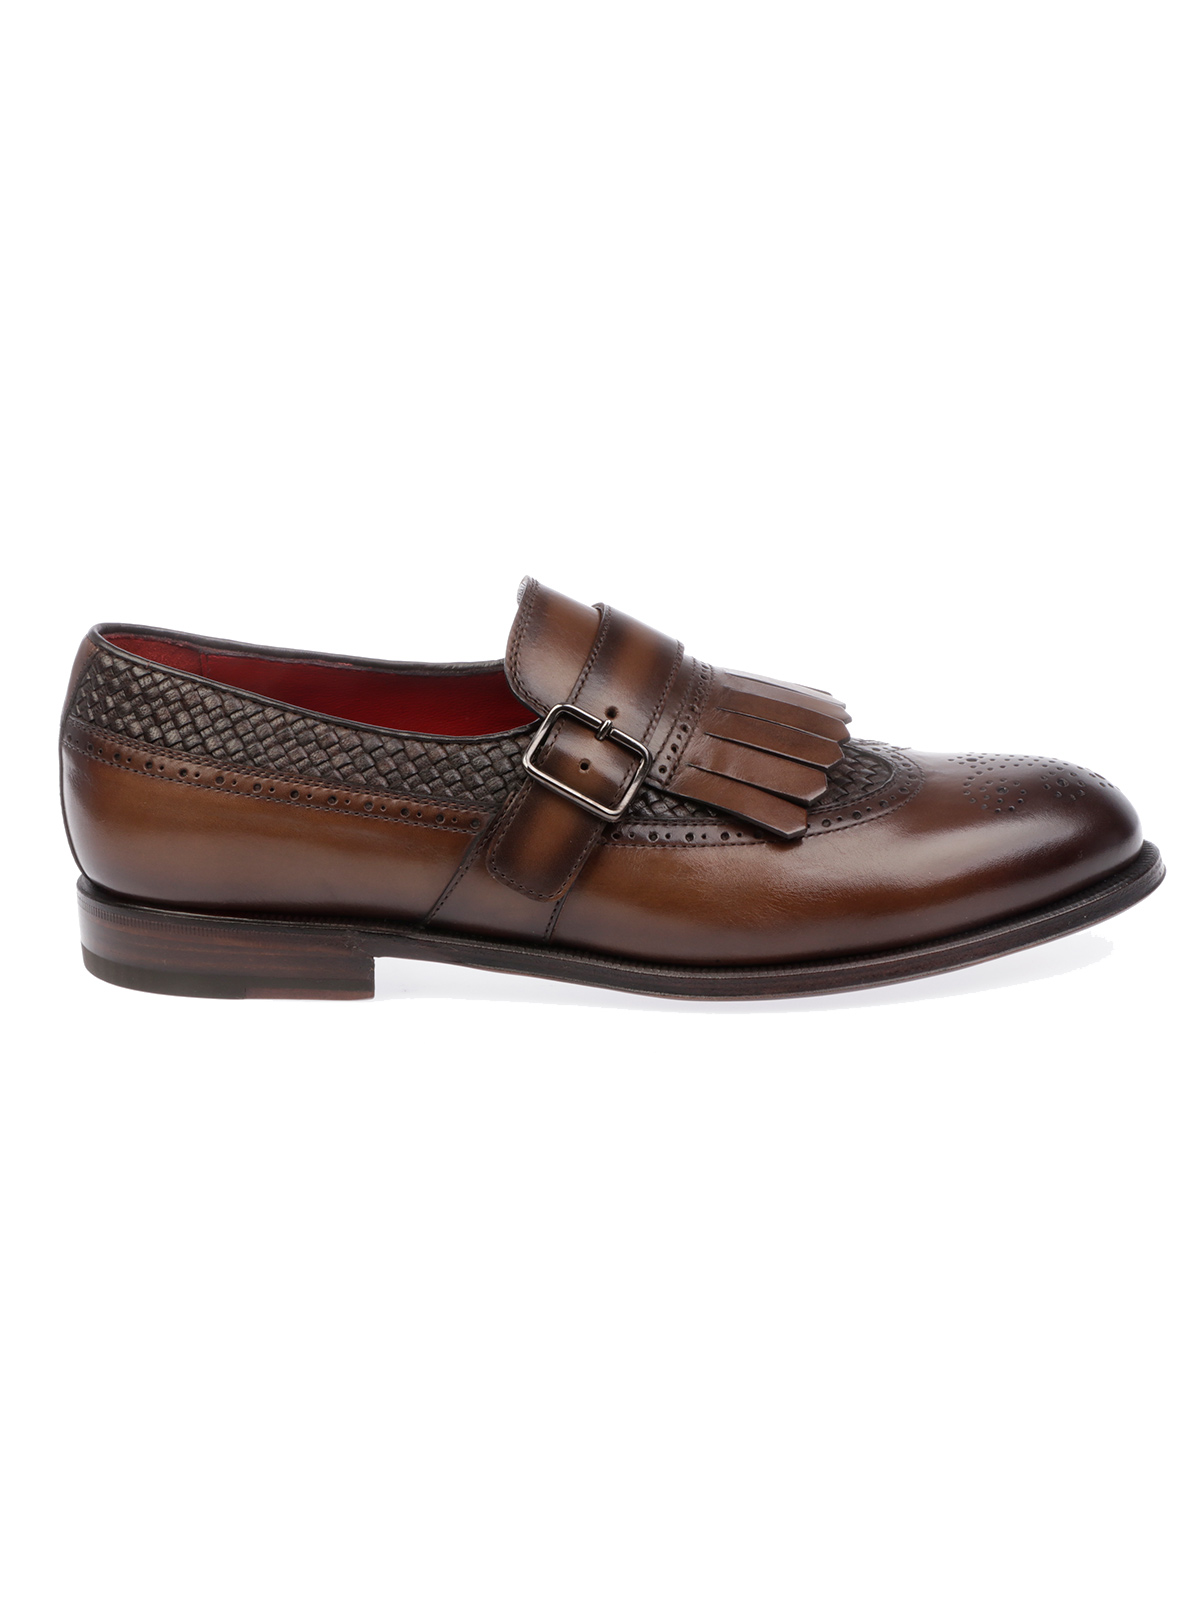 Picture of BARRETT | Men's Moccasin with Fringes